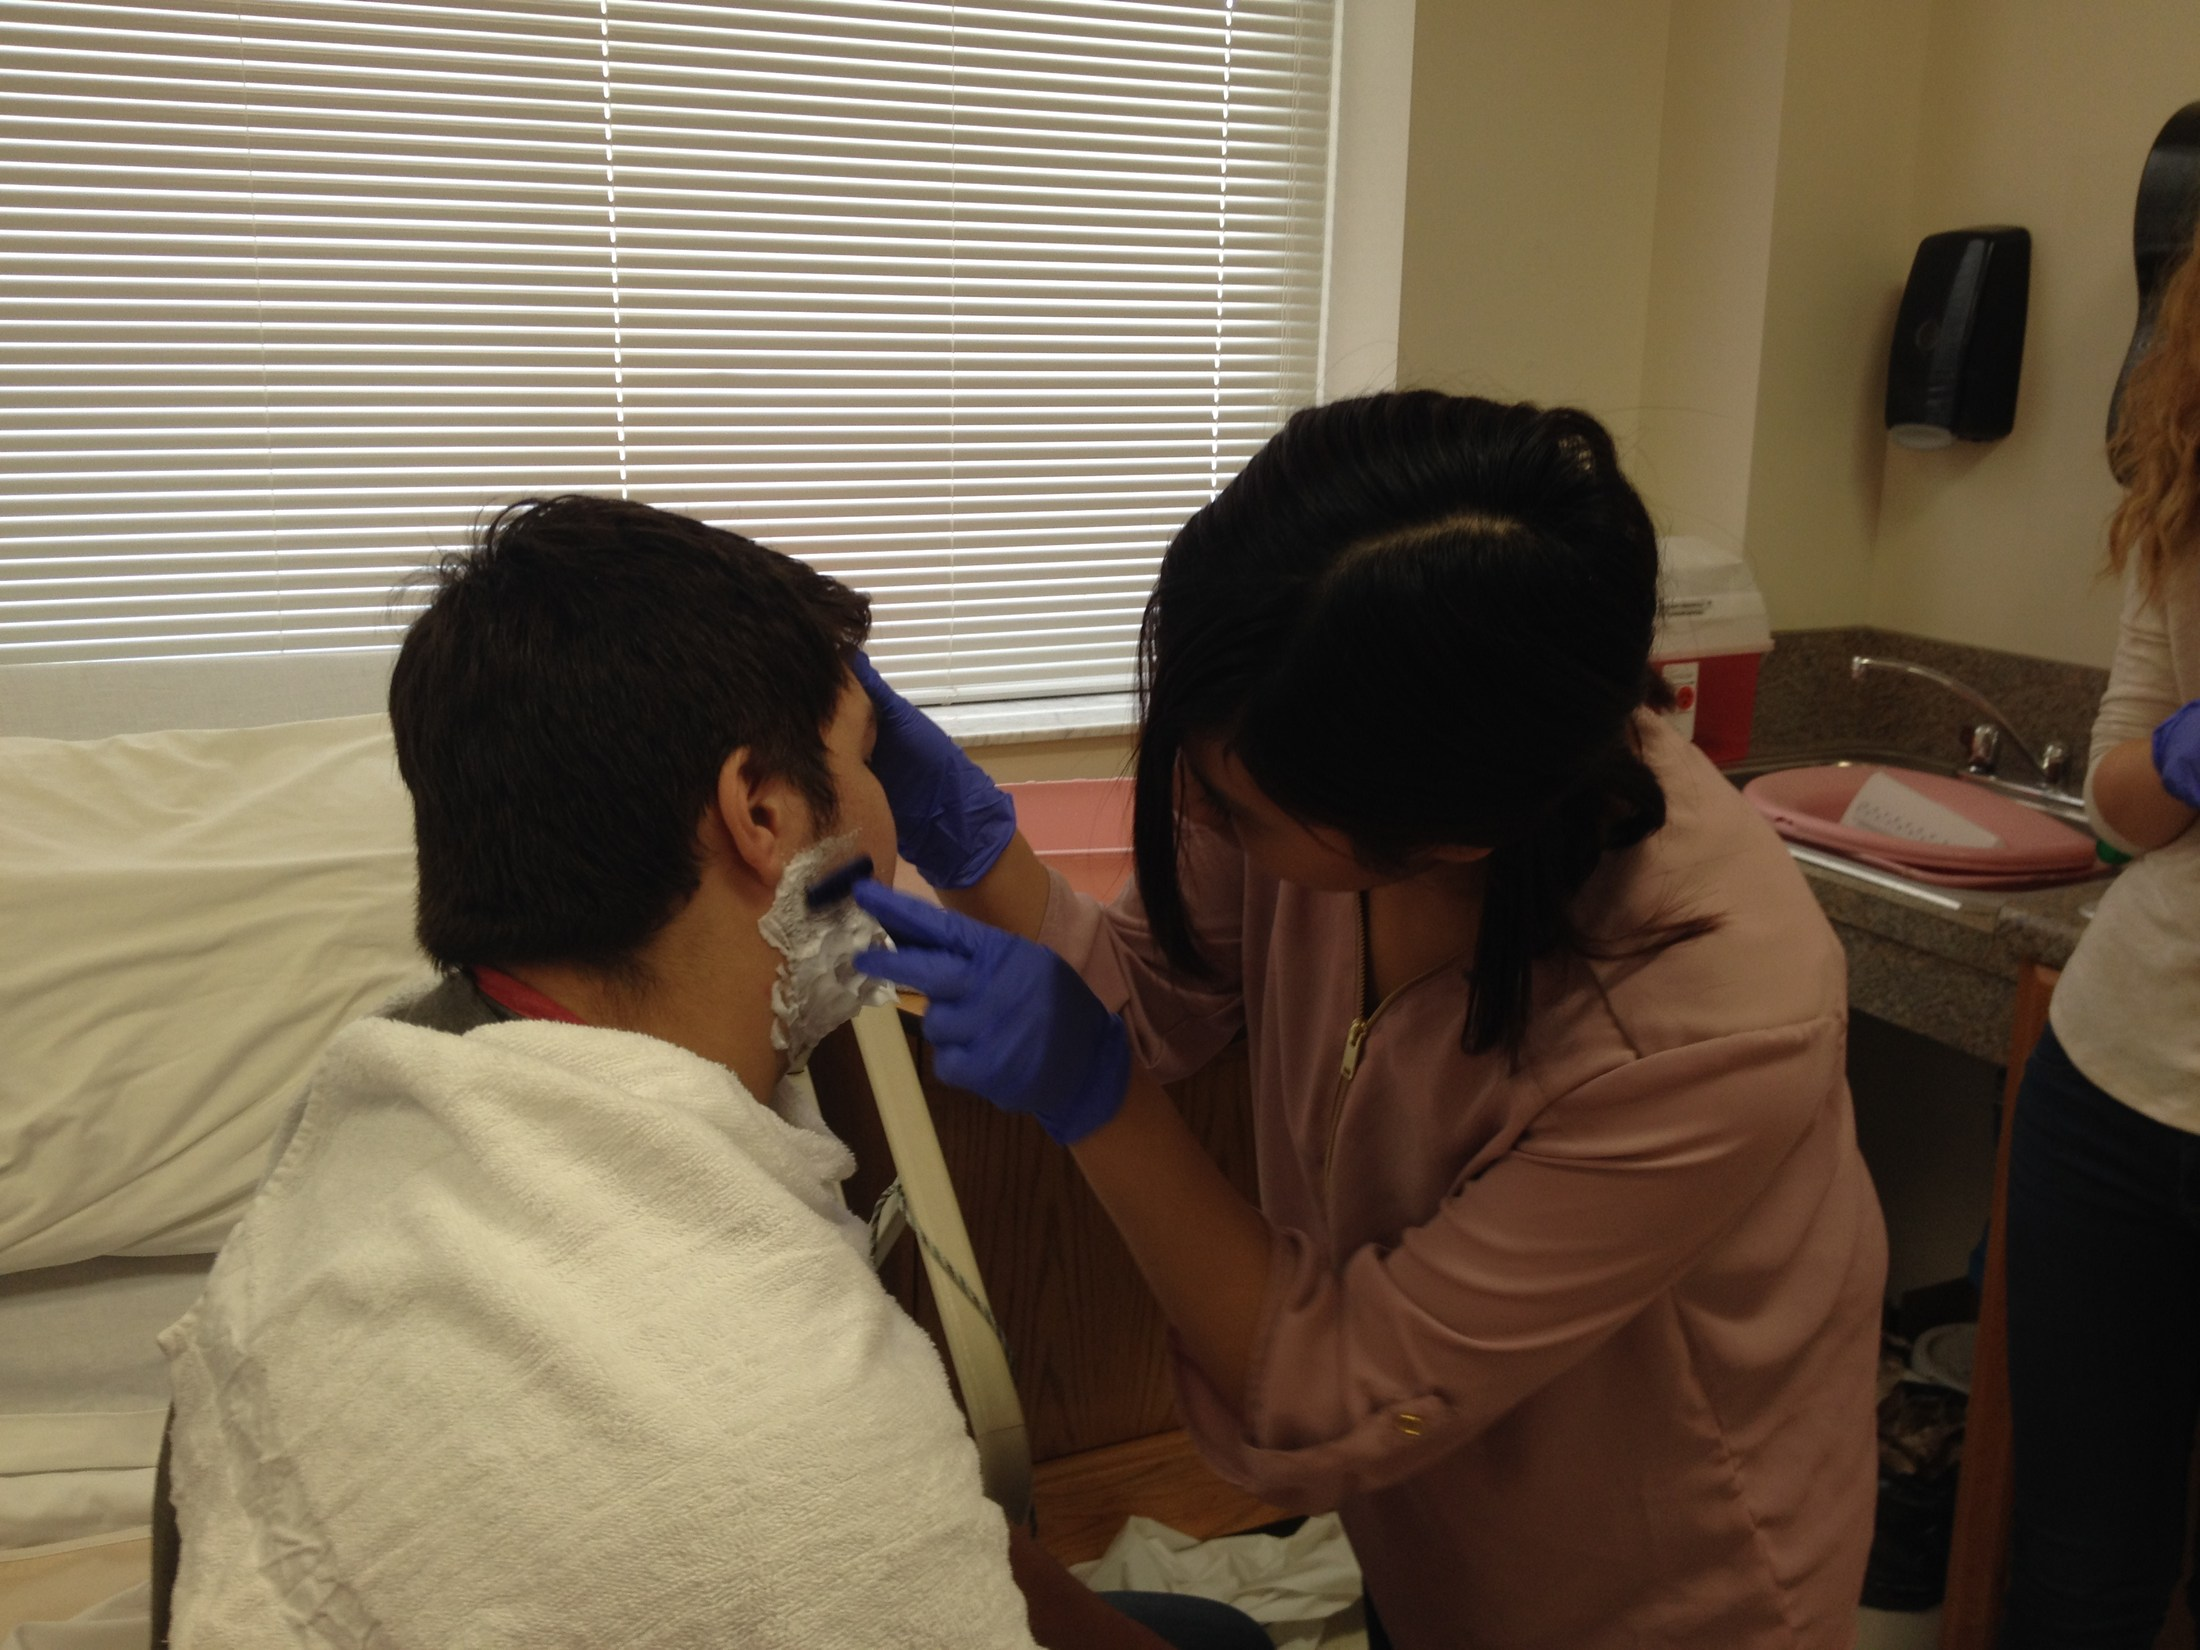 East Wilkes High Nursing Fundamentals student practice their skills